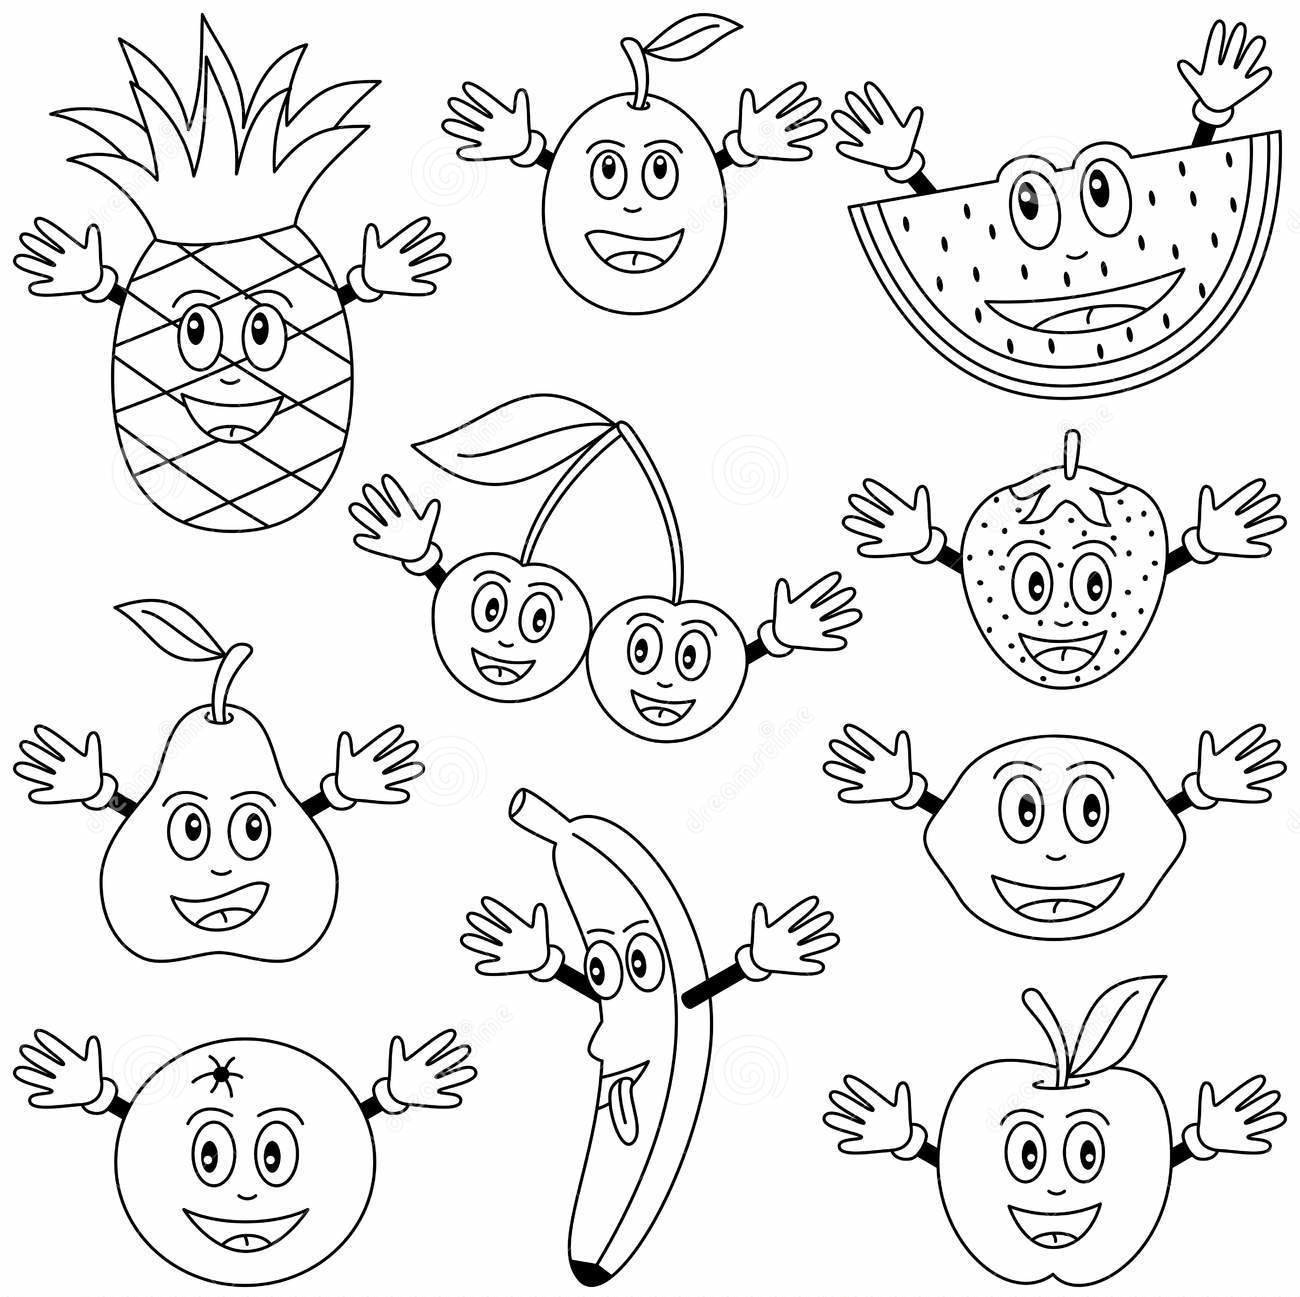 coloring printable fruits and vegetables fruits and vegetables coloring pages printable pictures of vegetables fruits coloring printable and